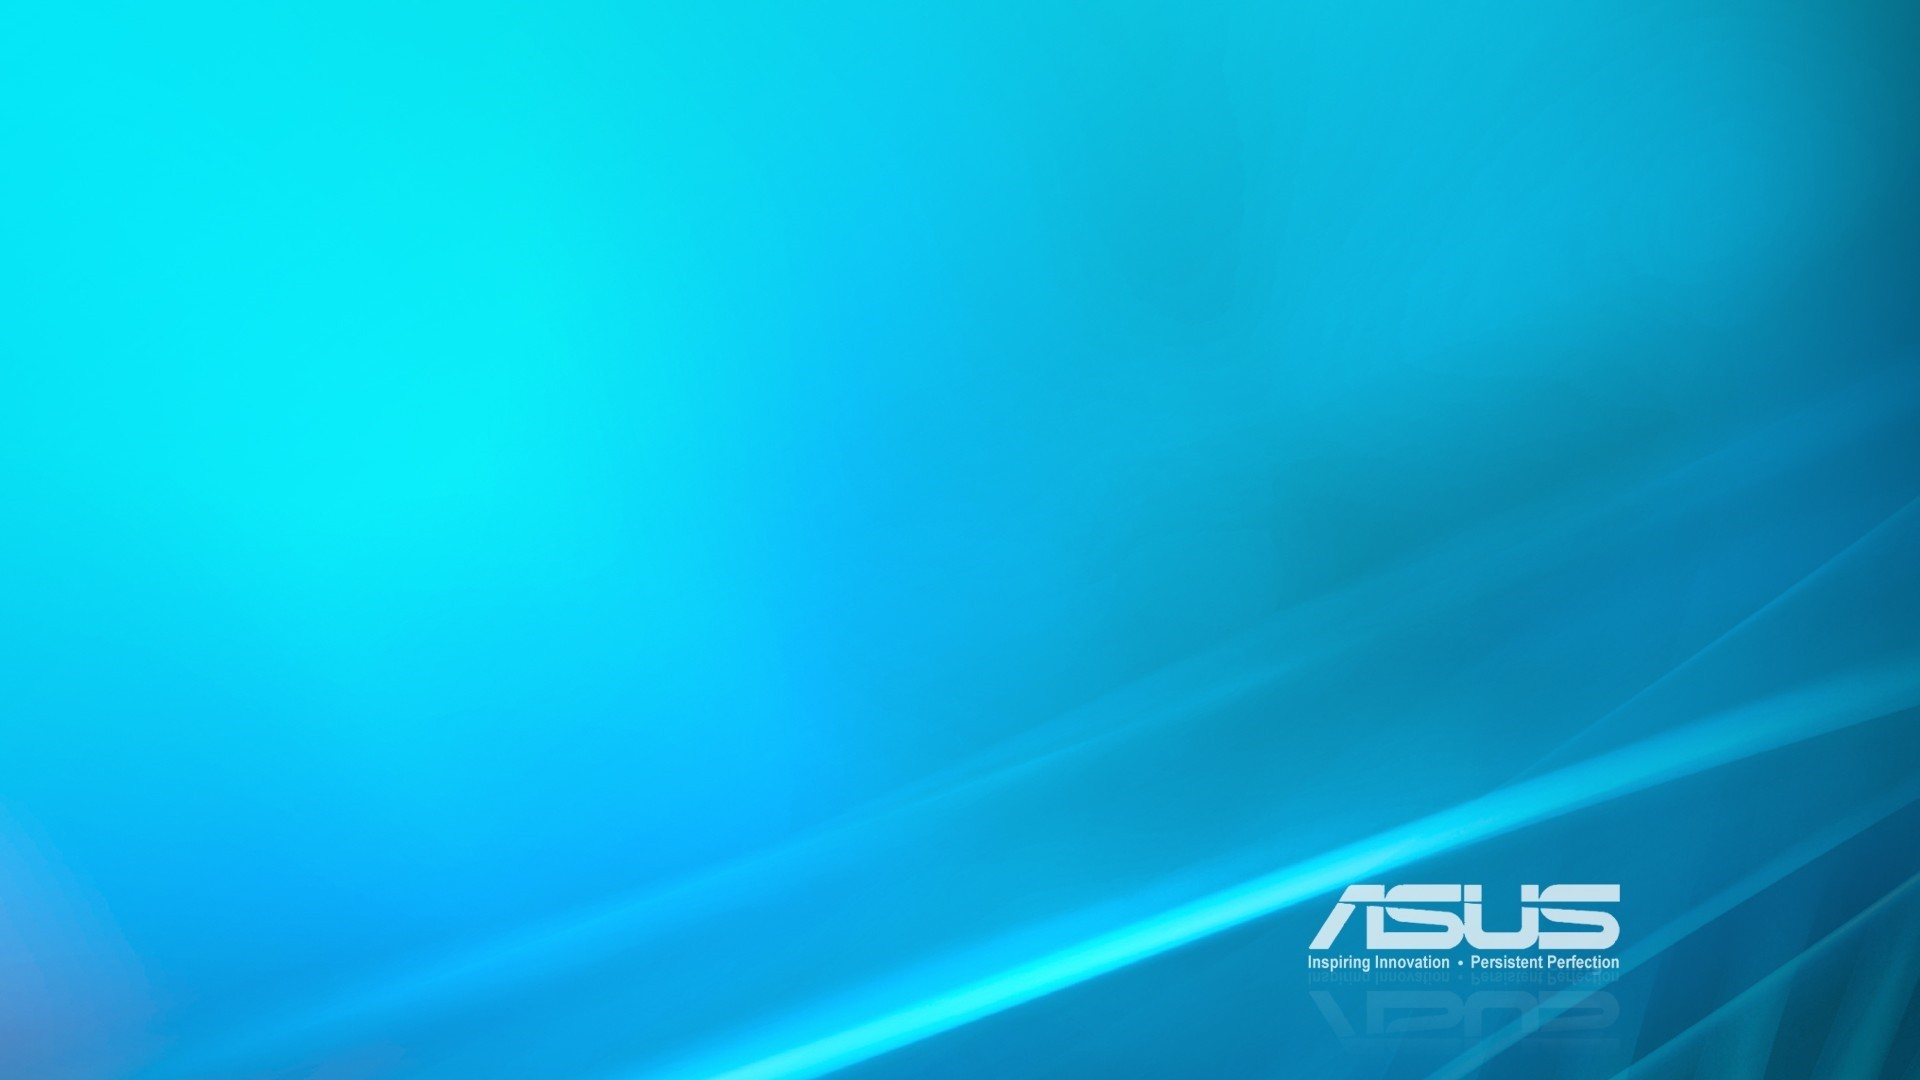 Asus PC Wallpaper HD